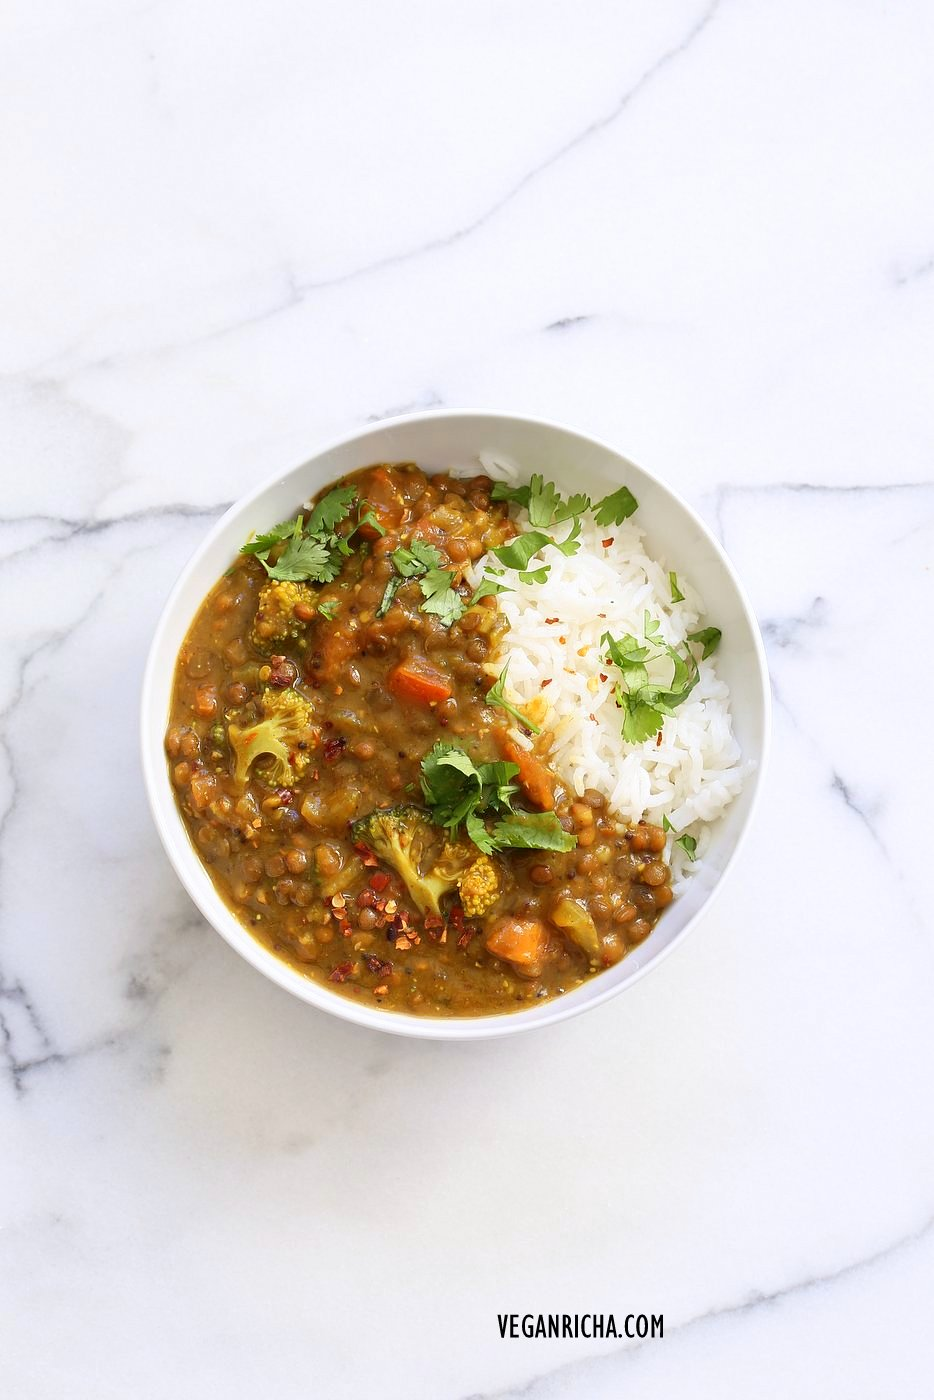 Brown Lentil Soup with Broccoli, Fenugreek seeds and black pepper. Warming Winter soup with veggies and fenugreek for healing and detox. Vegan Gluten-free Soy-free Dal Recipe | VeganRicha.com